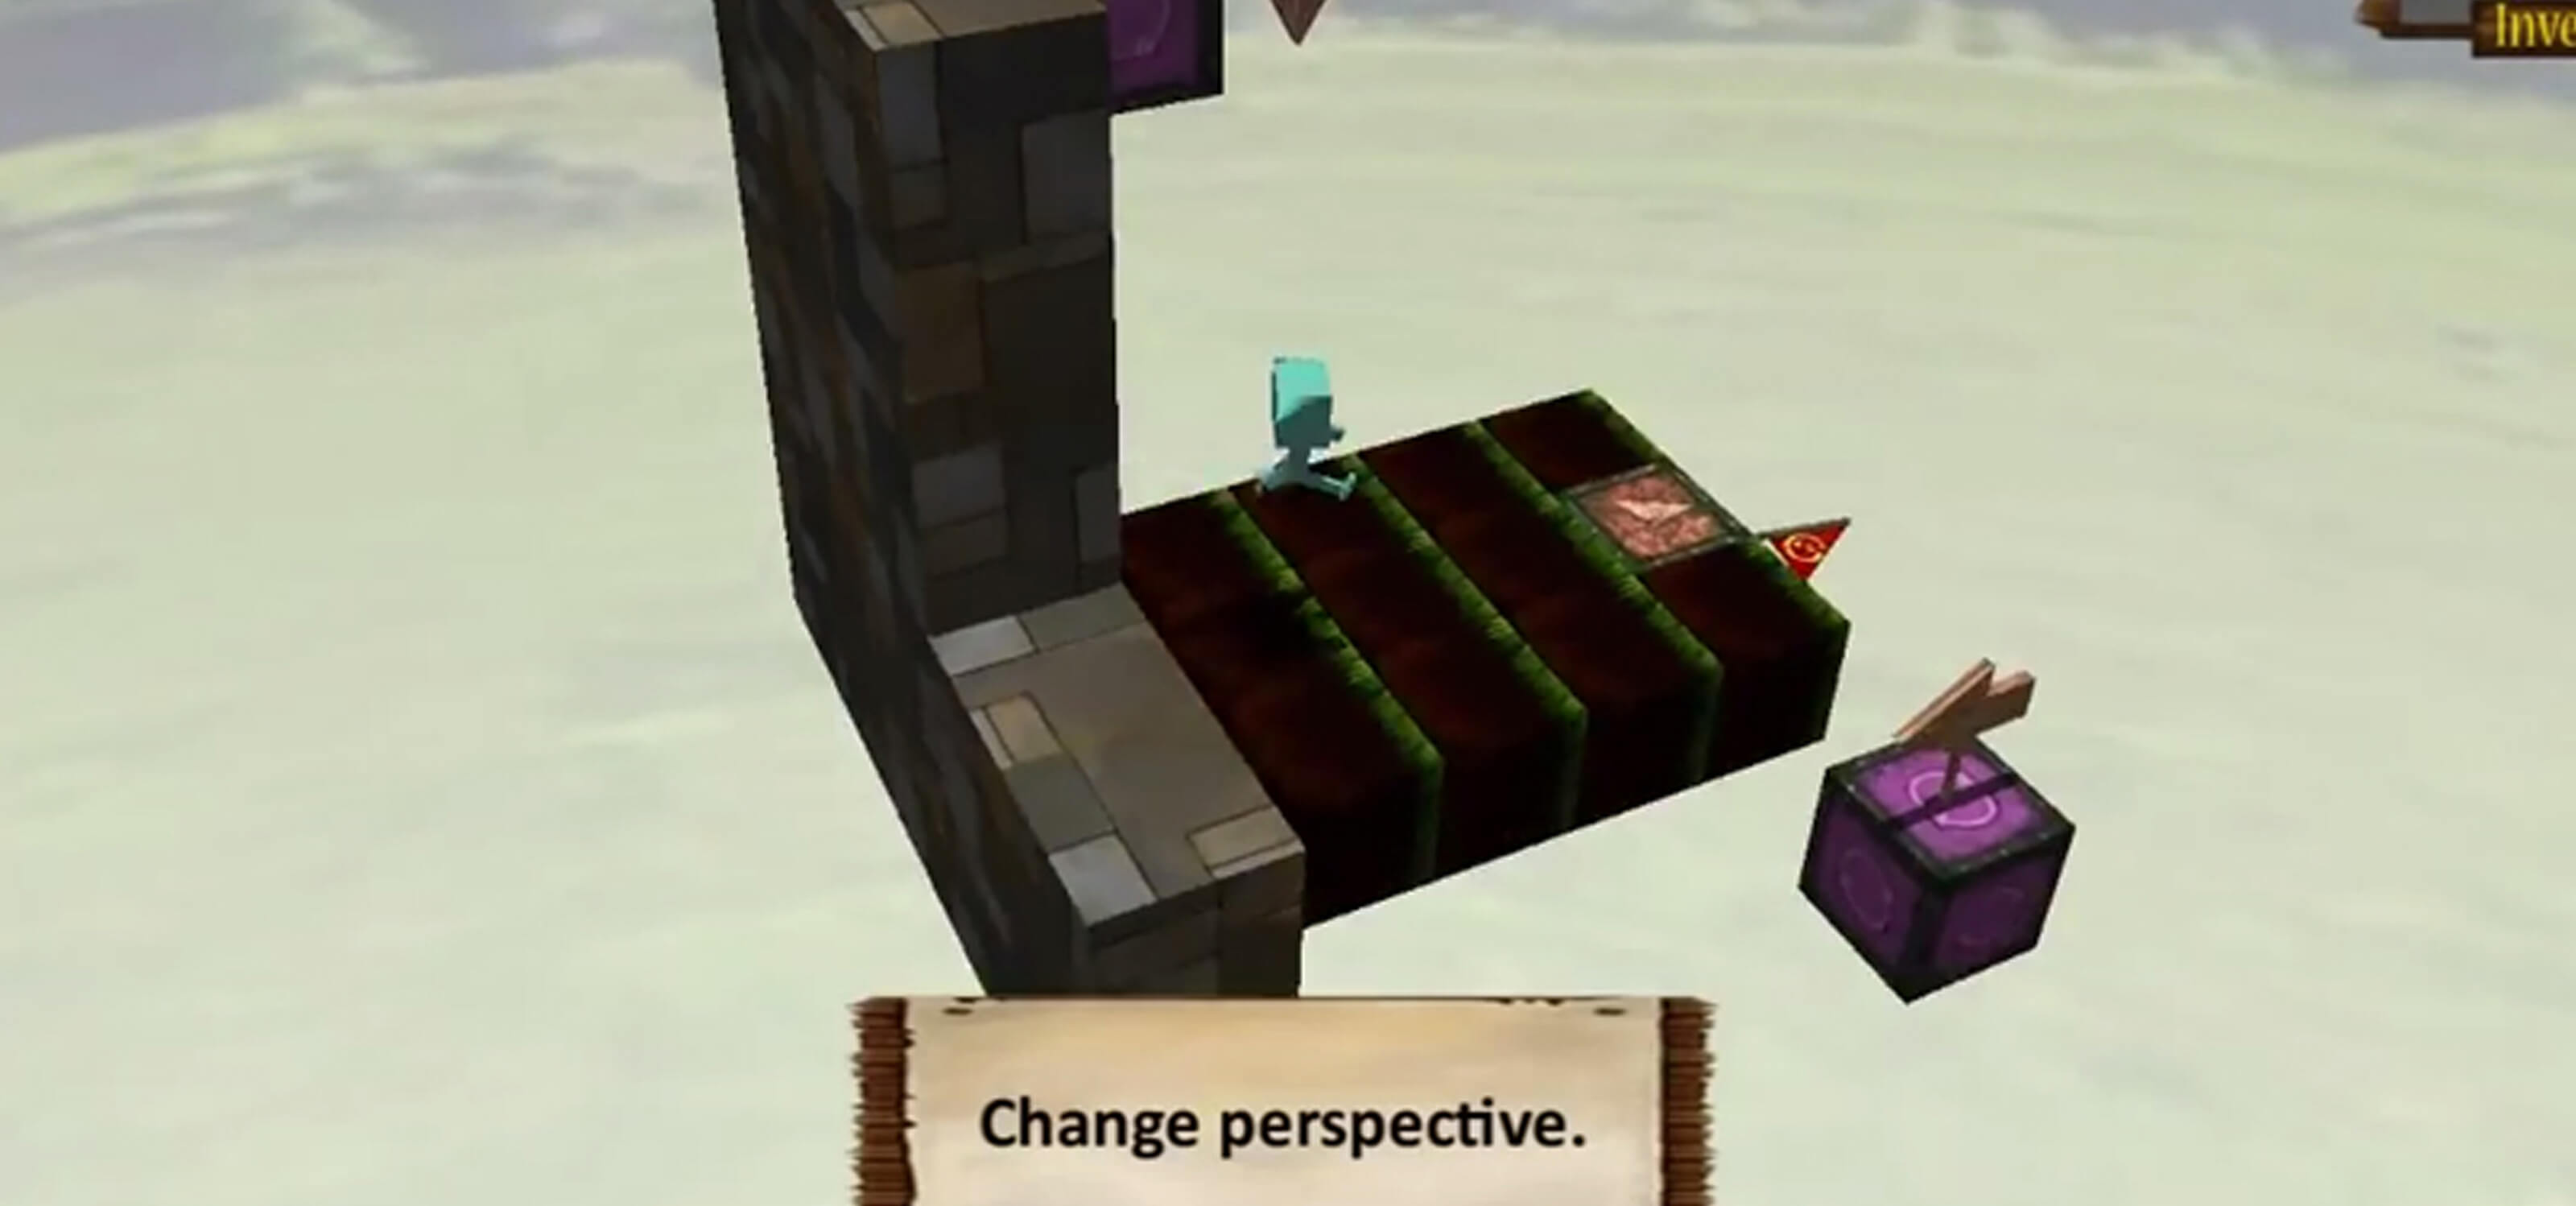 Screenshot from Blockhead game, a green character with a cube head runs on a platform floating in the sky